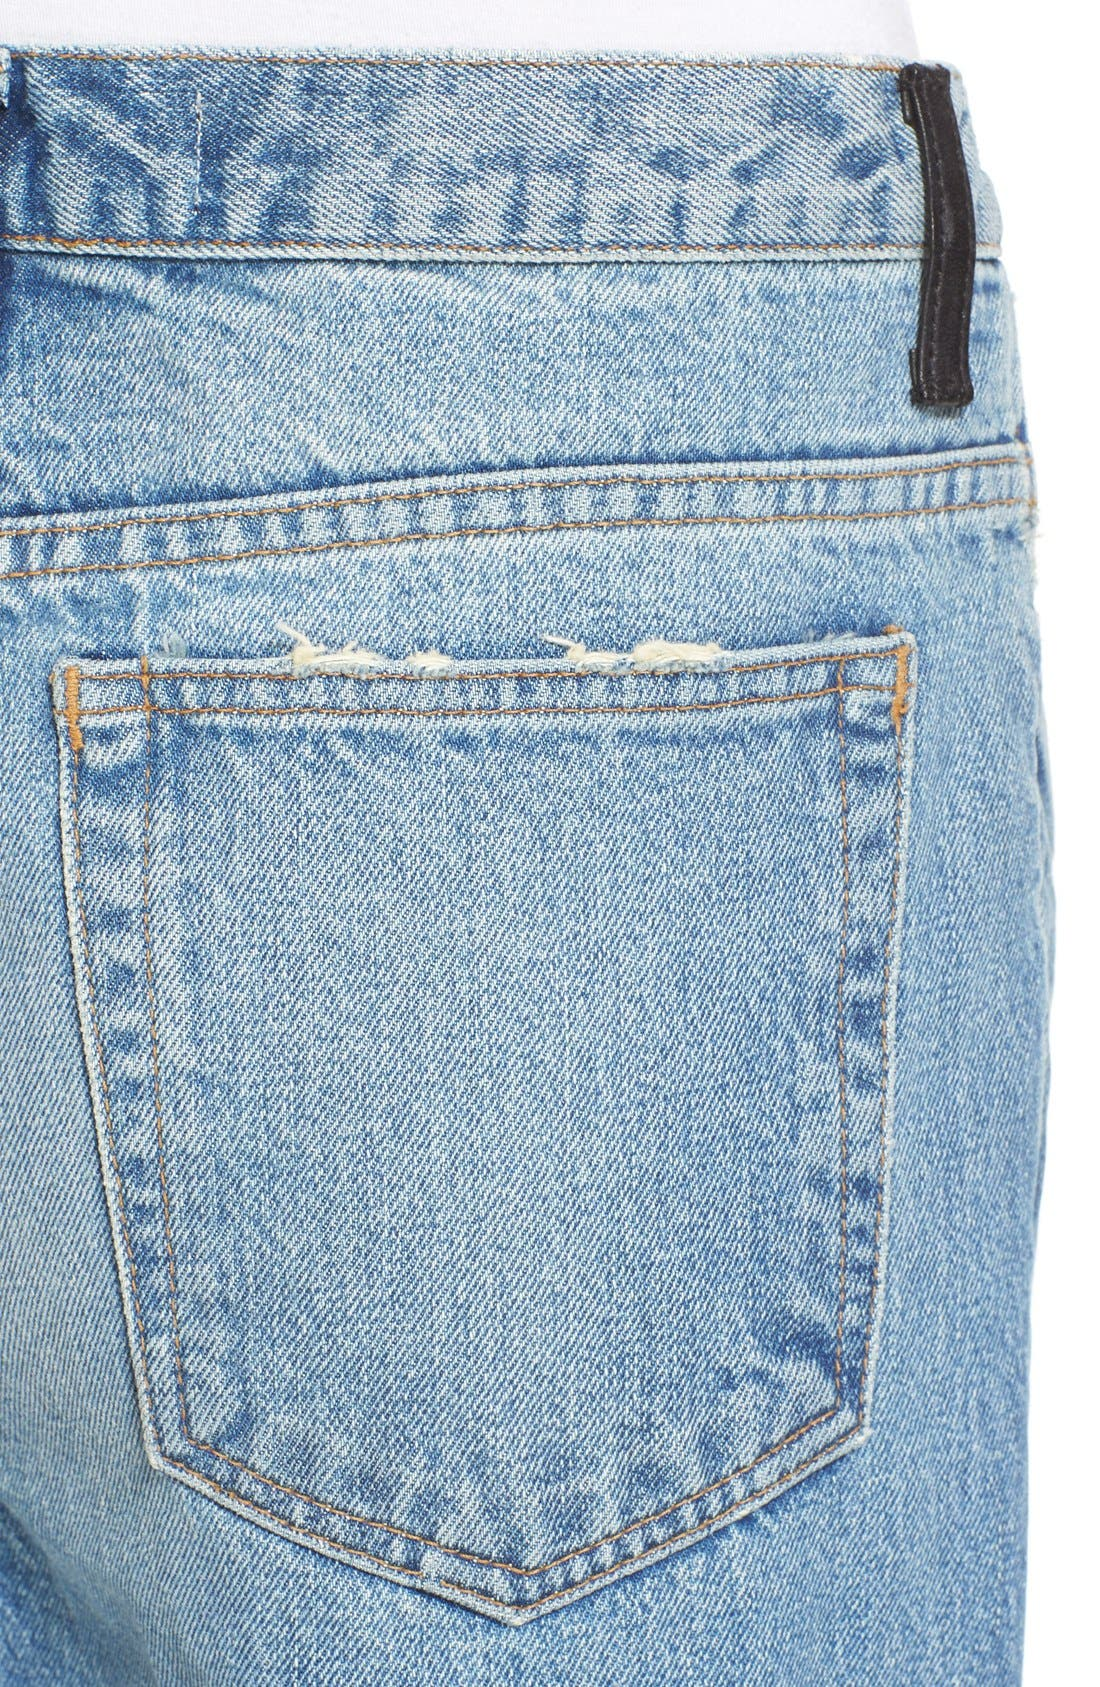 Denim x Alexander Wang Rave Wide Leg Jeans,                             Alternate thumbnail 2, color,                             453